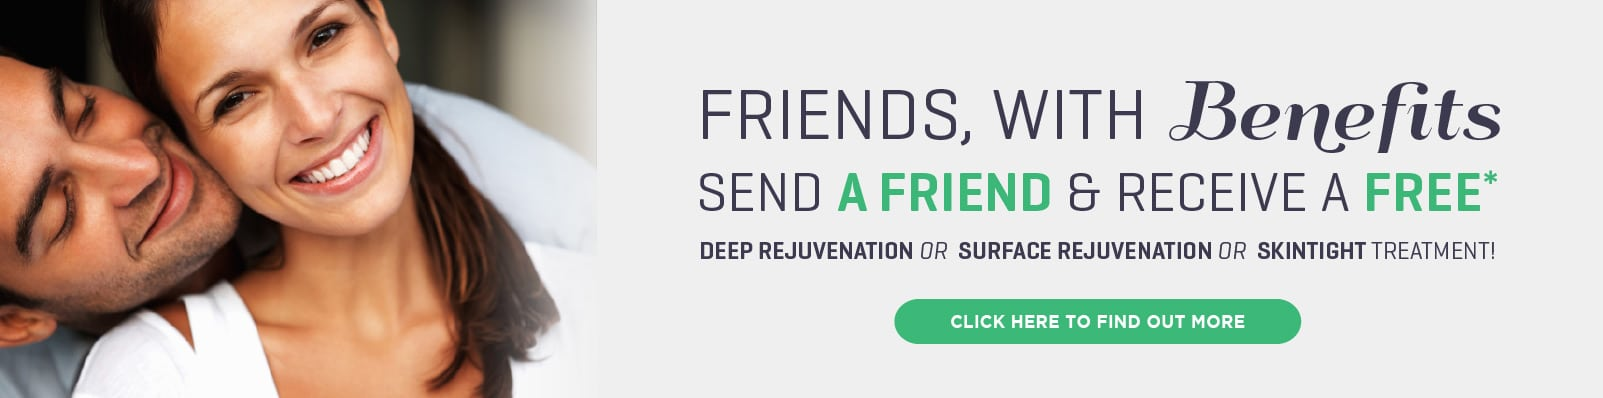 Friends With Benefits Web Banner